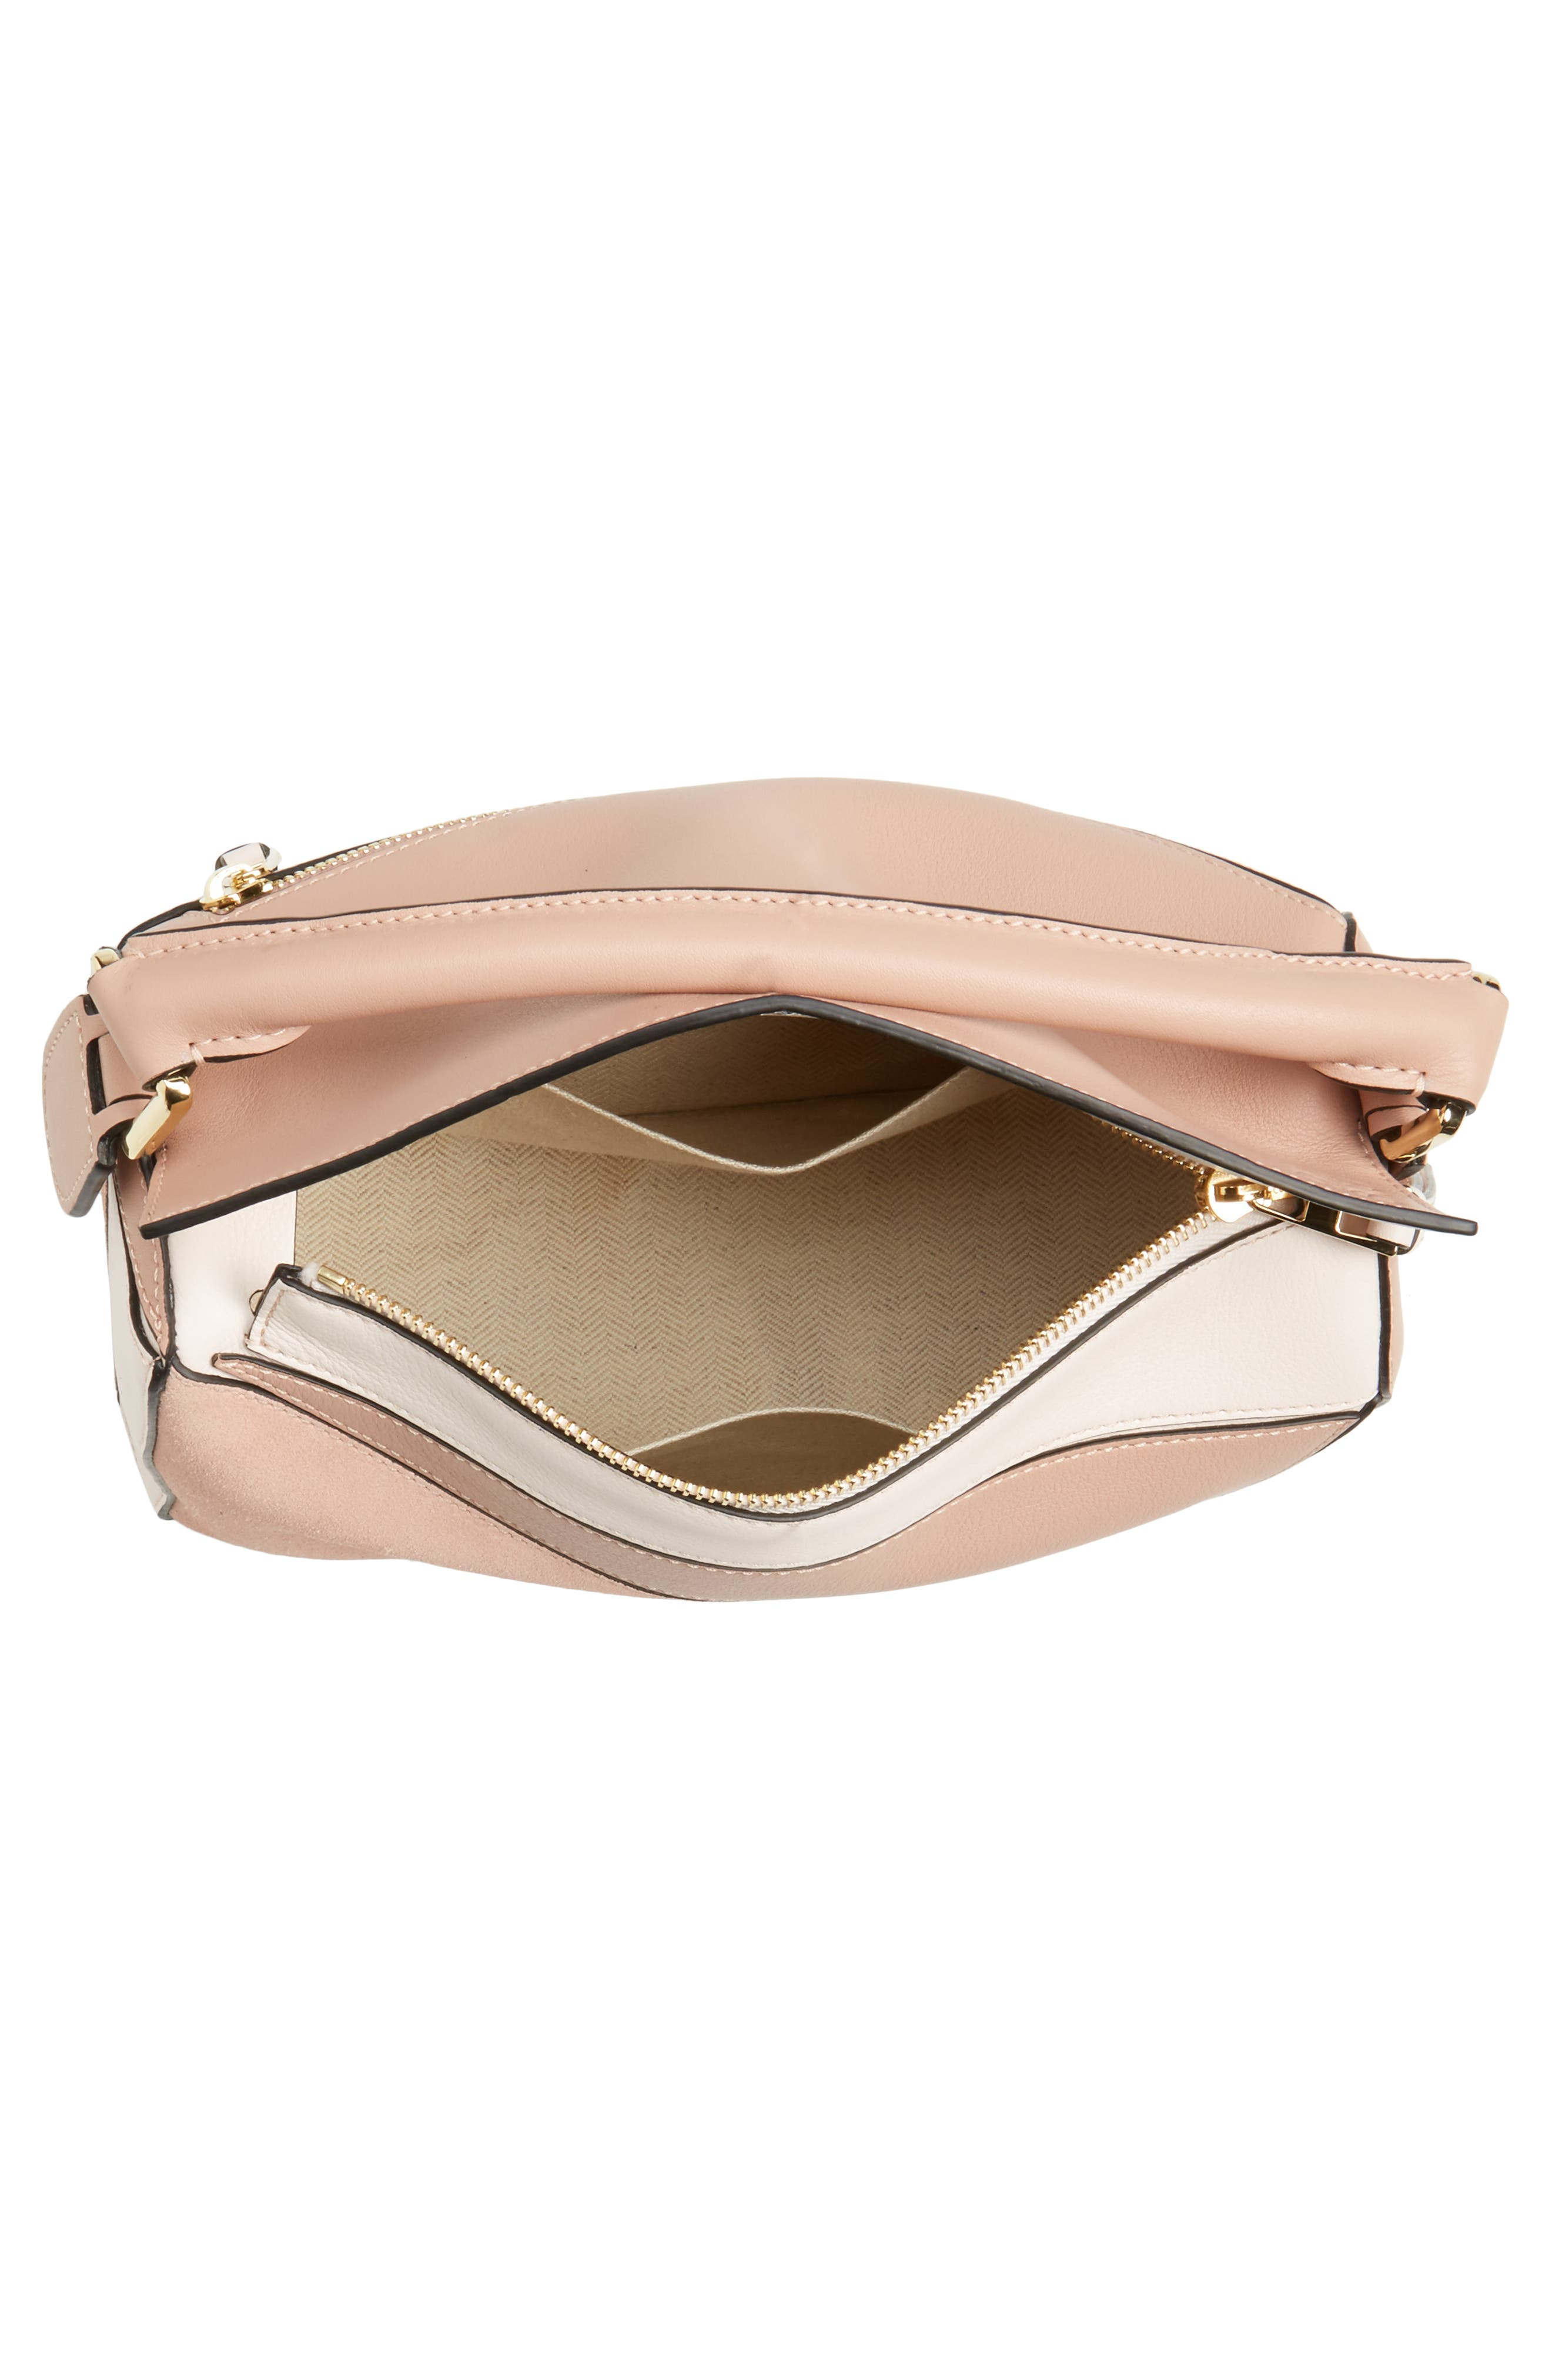 Small Puzzle Bicolor Leather Bag,                             Alternate thumbnail 4, color,                             Blush Multitone